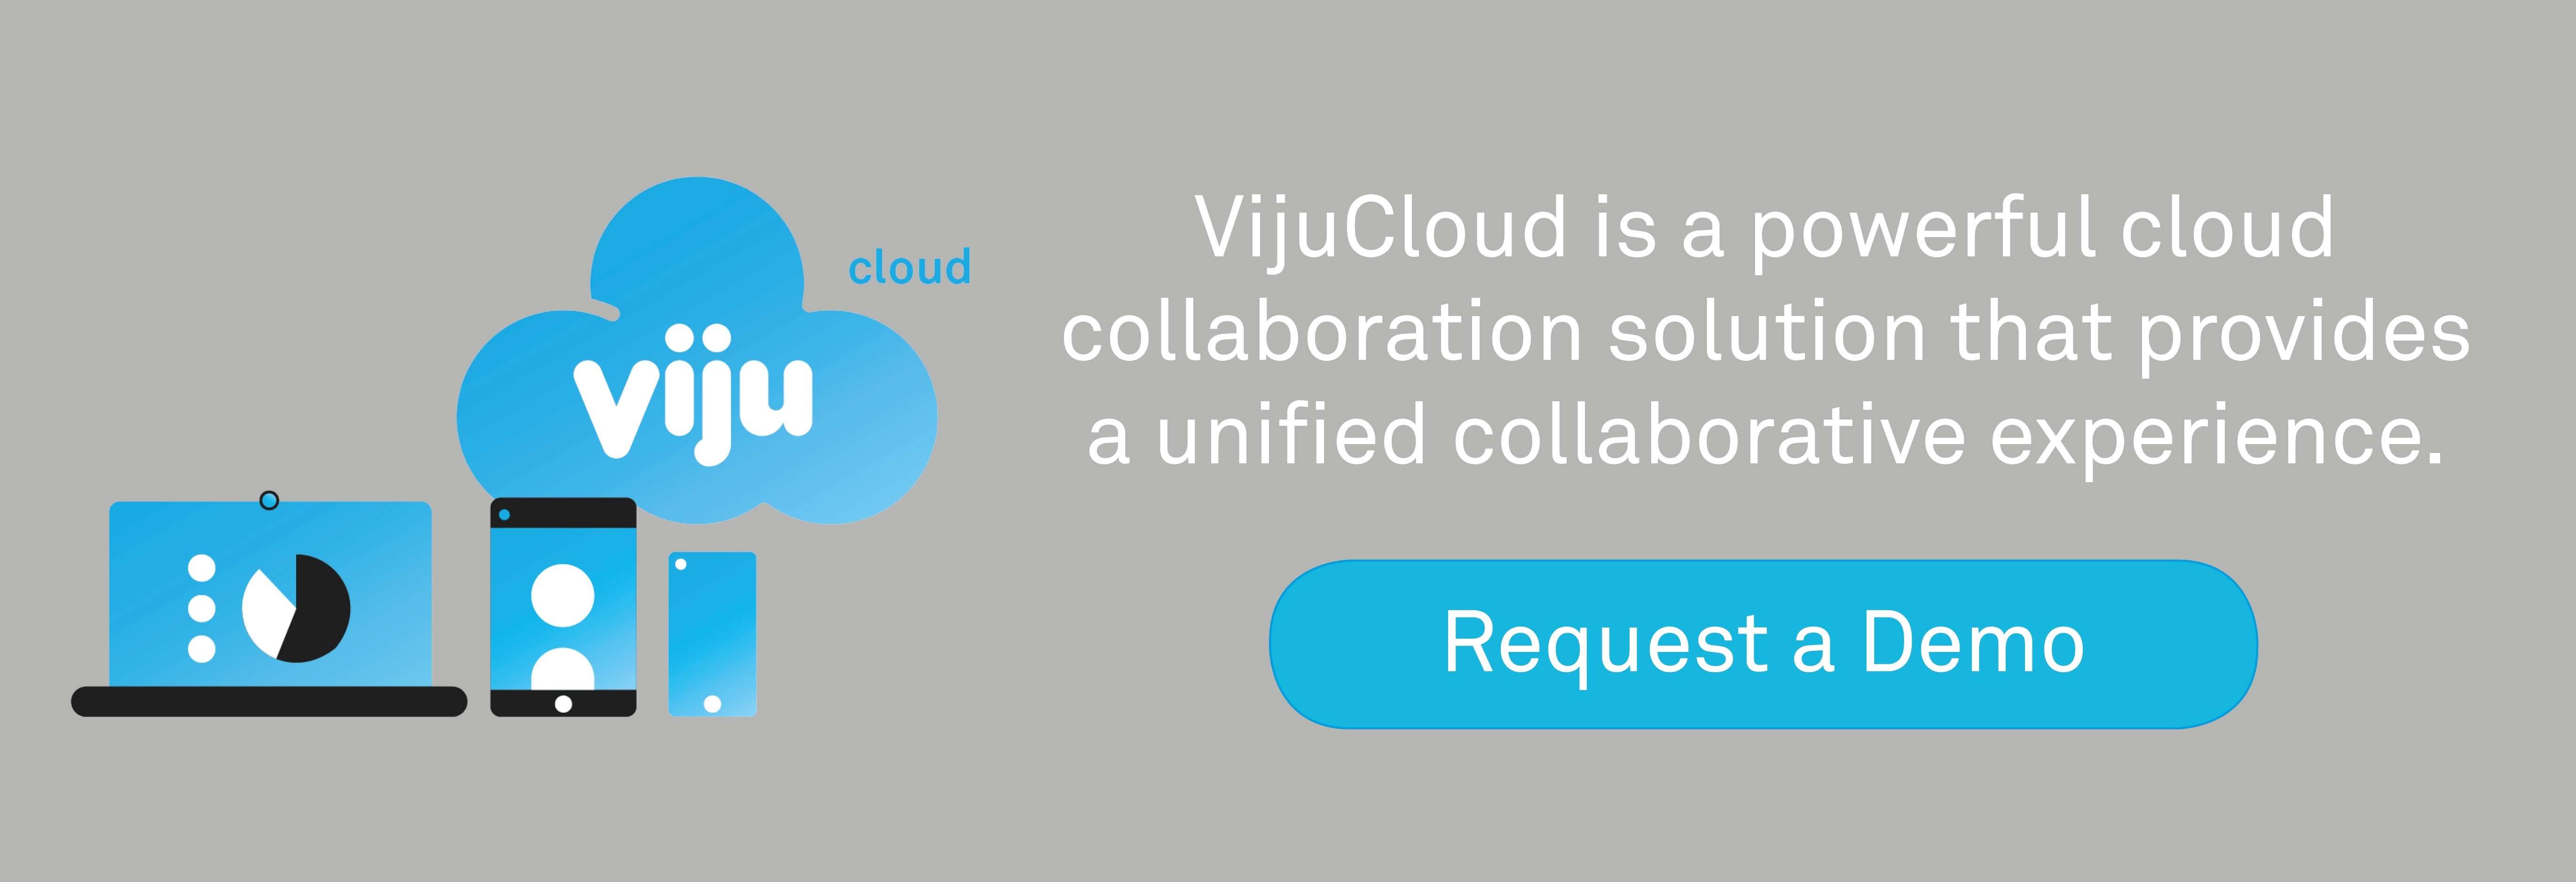 VijuCloud Demo